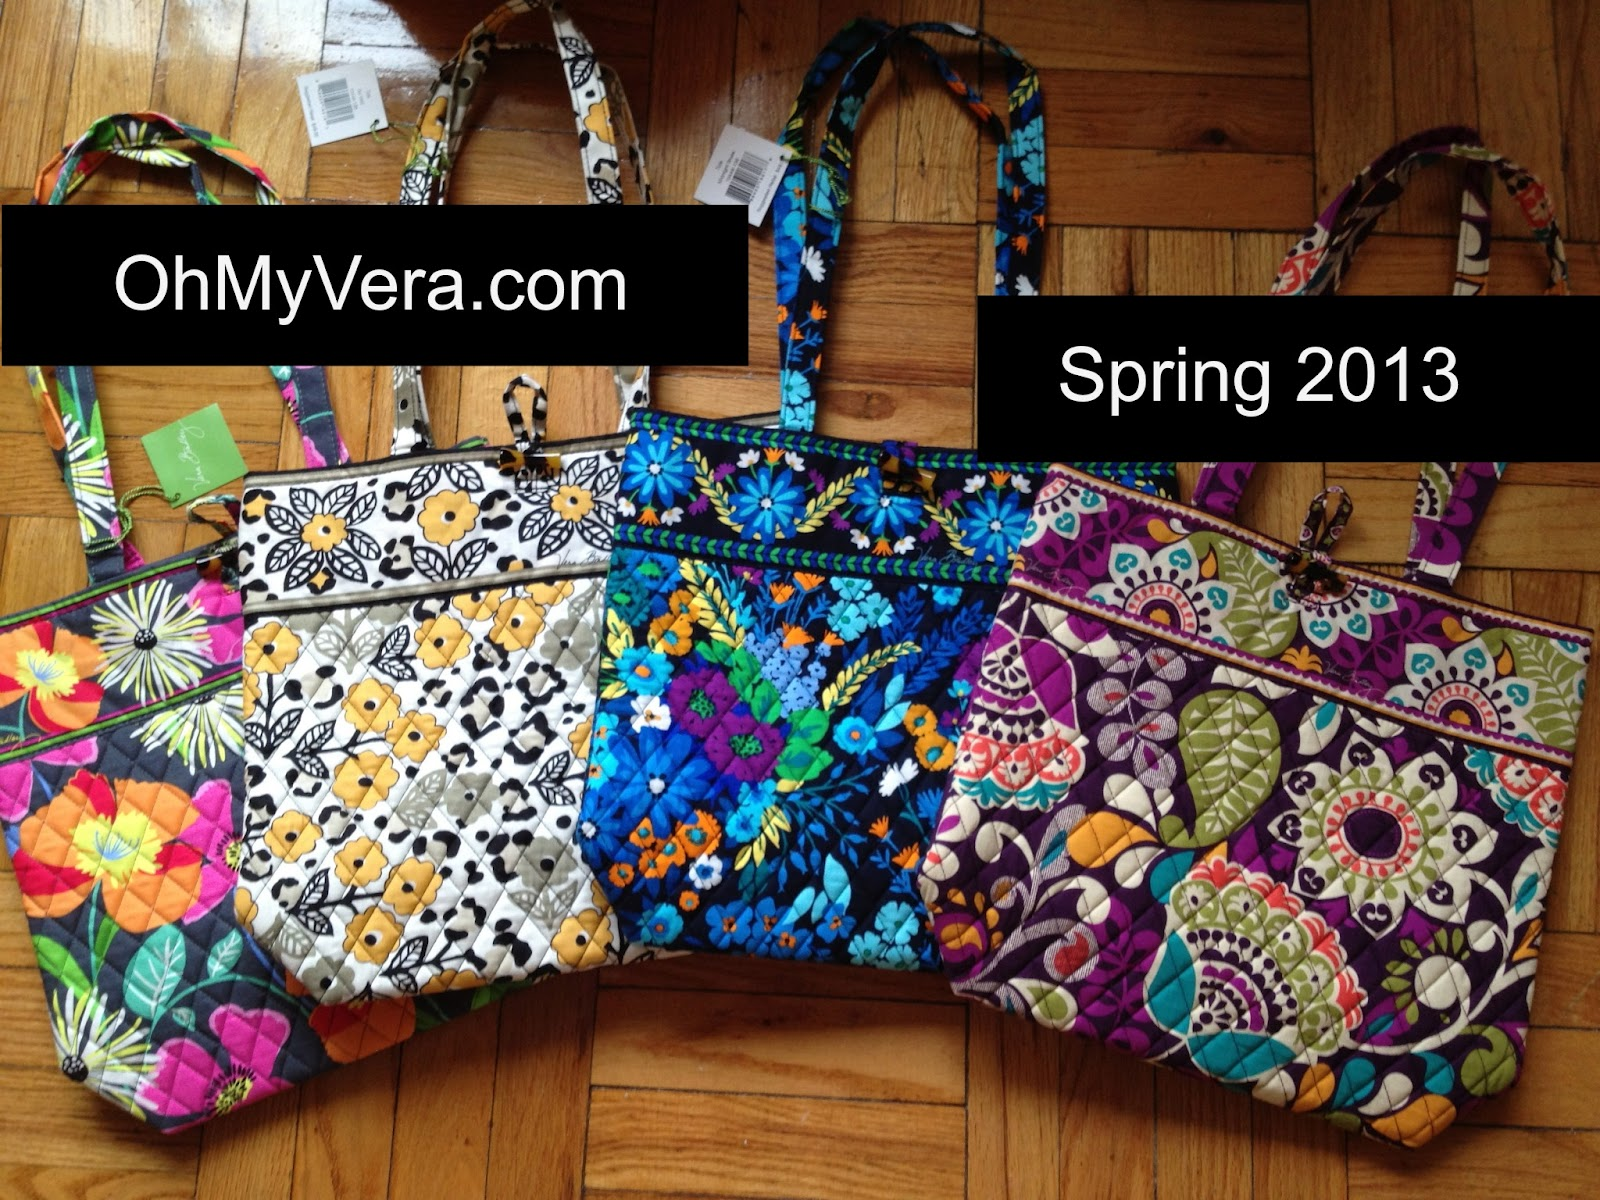 b6f7b12fa4bf OhMyVera! A blog about all things Vera Bradley  Vera Bradley Spring ...